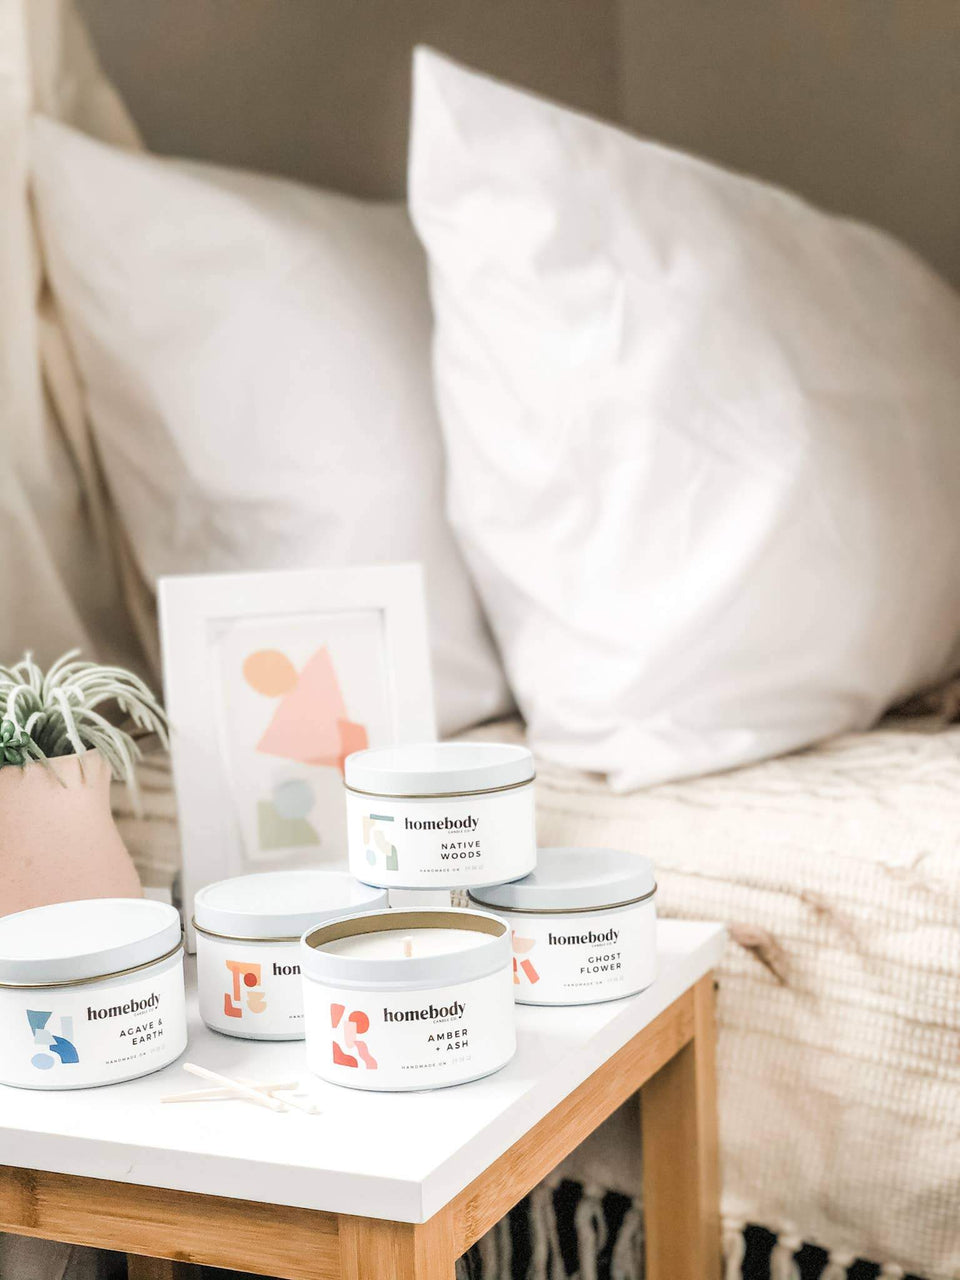 homebody candle tins